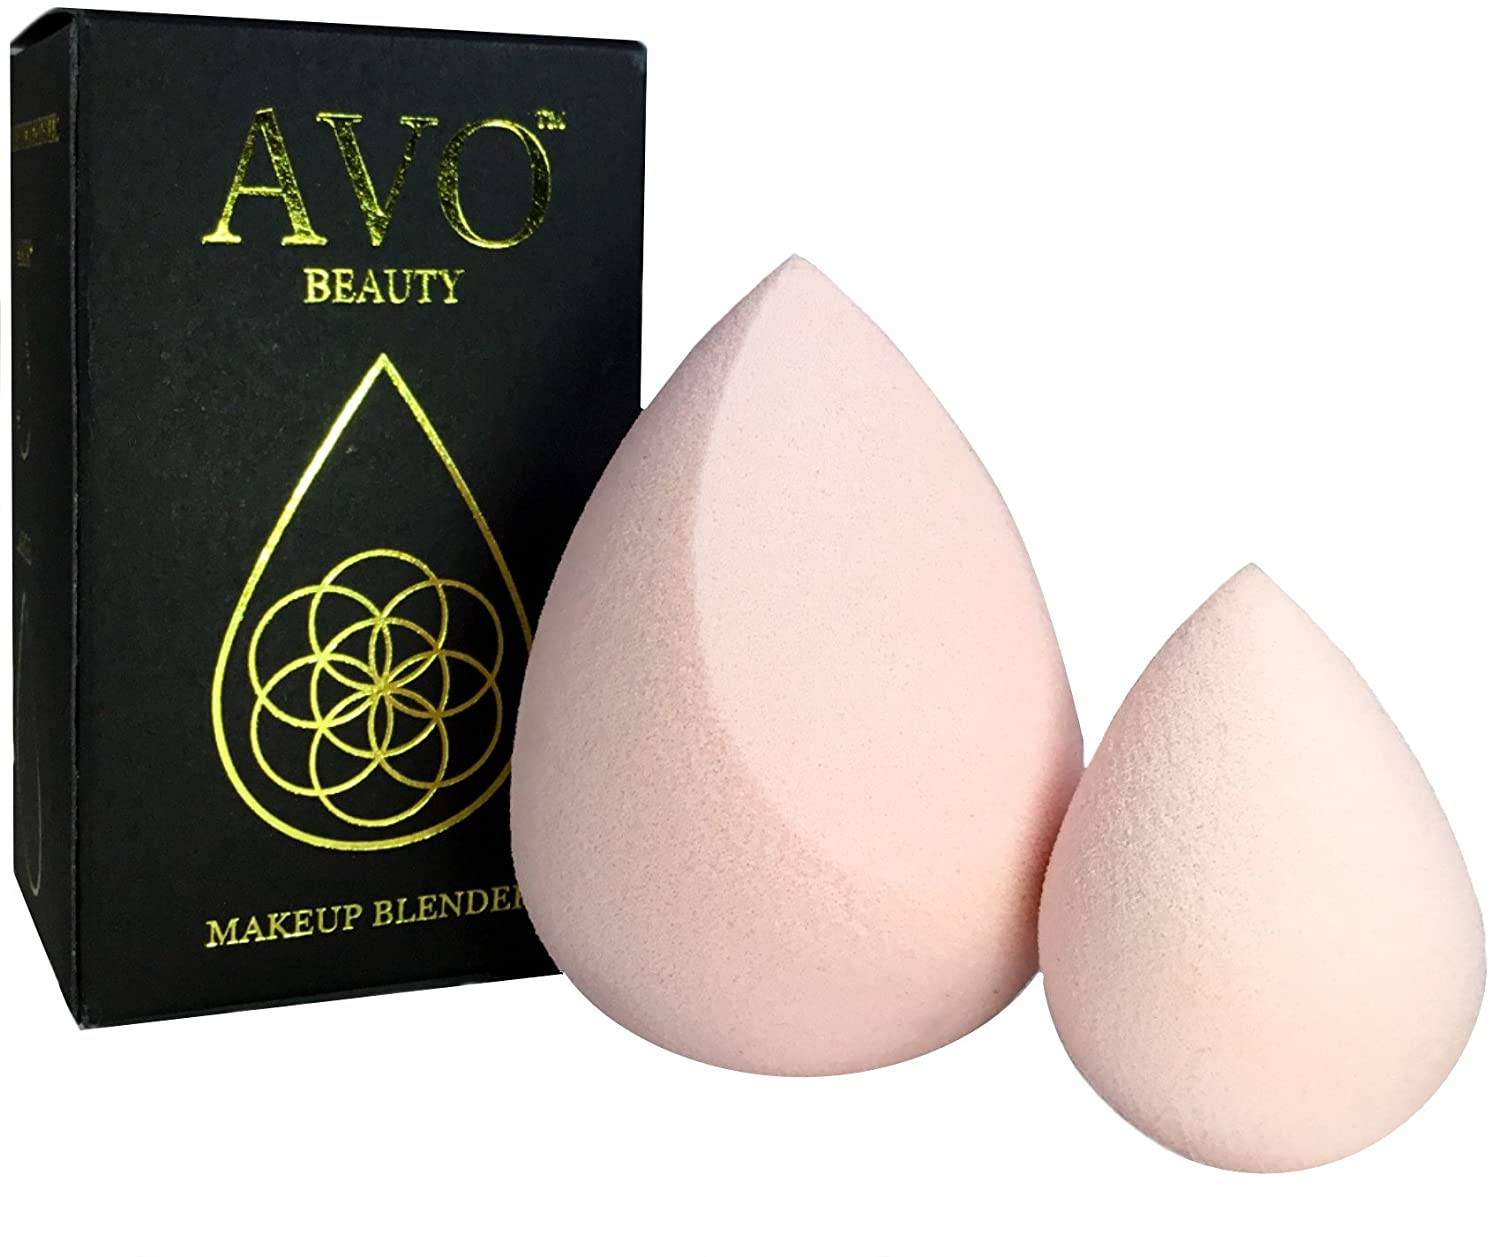 Makeup Blender Beauty Sponge Set! Use With Foundation, Powders, Creams, Any Liquid Make-Up. 100% Latex Free & Hypoallergenic - 2 Original Cosmetic Make Up Applicators AVO BEAUTY